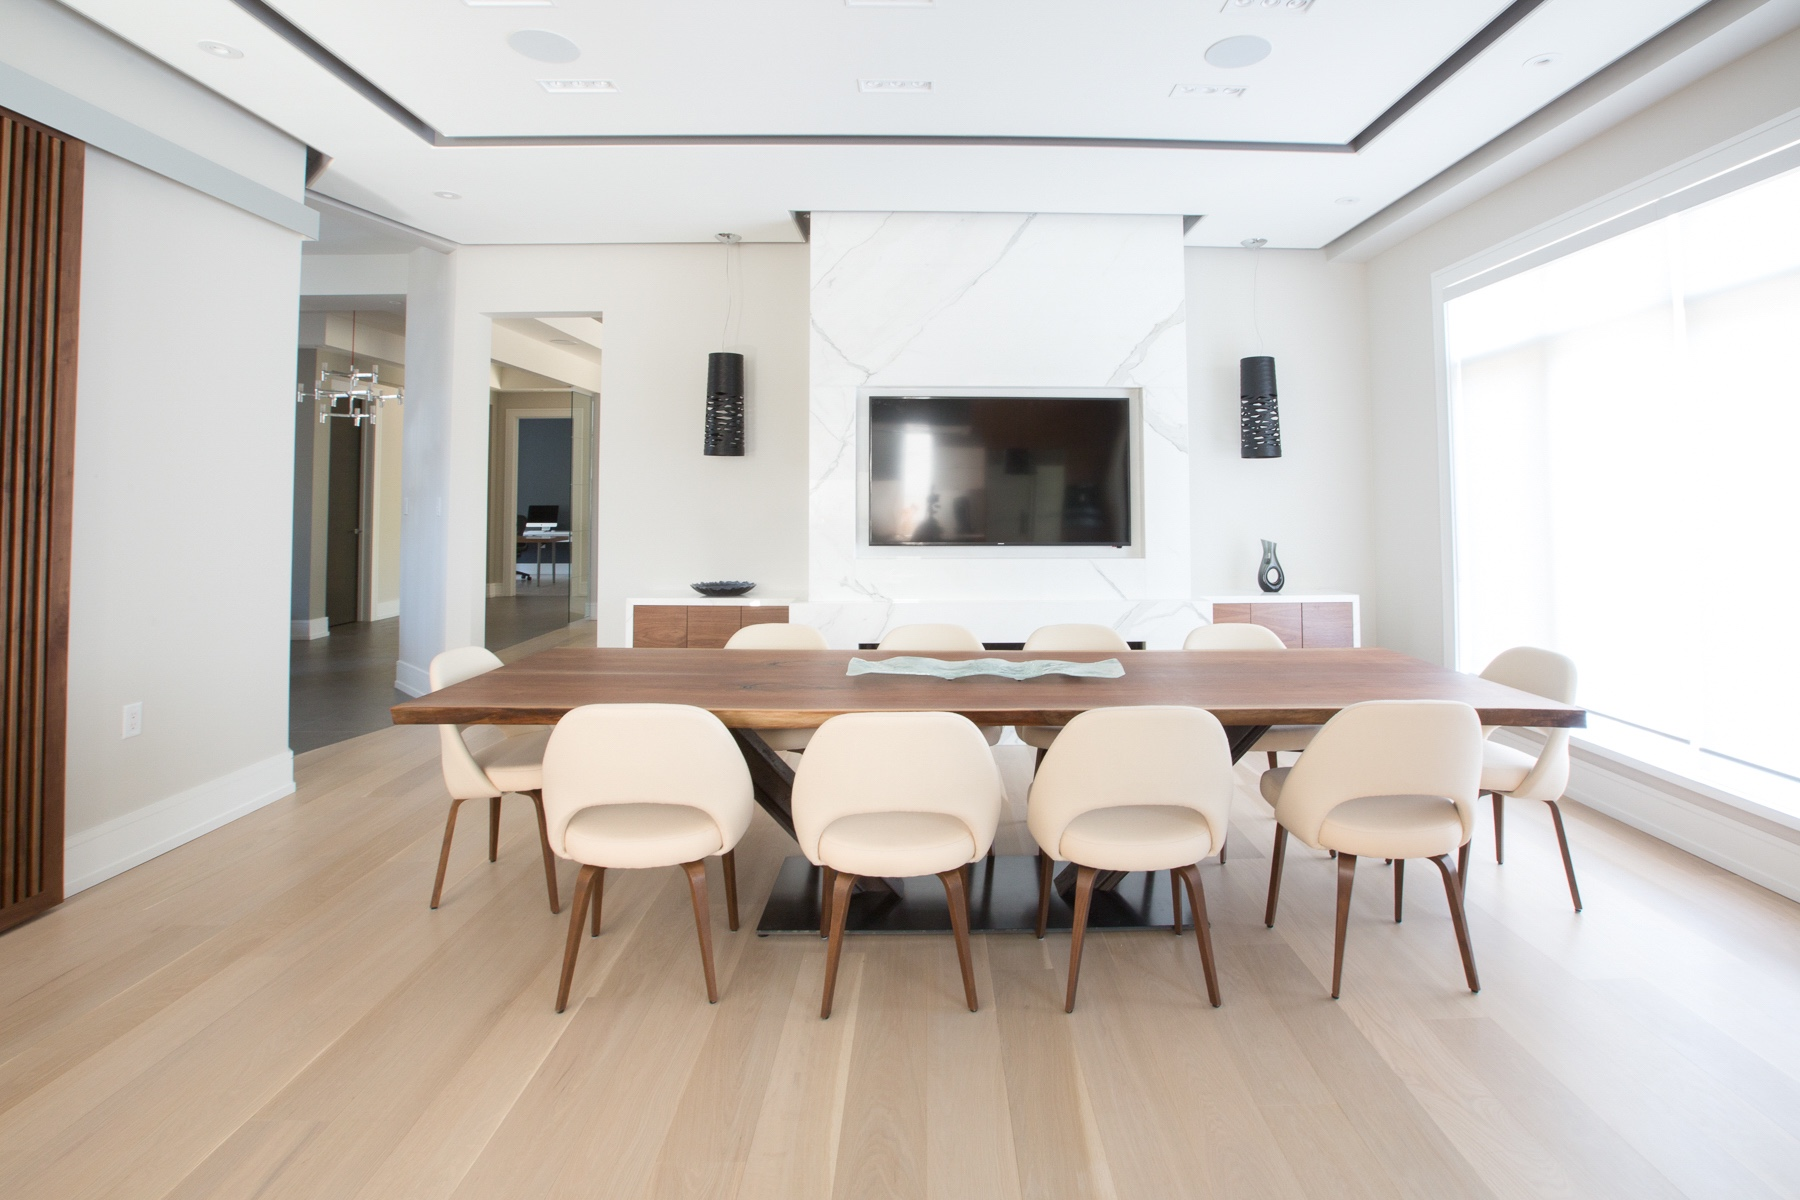 Wood dining table with white chairs